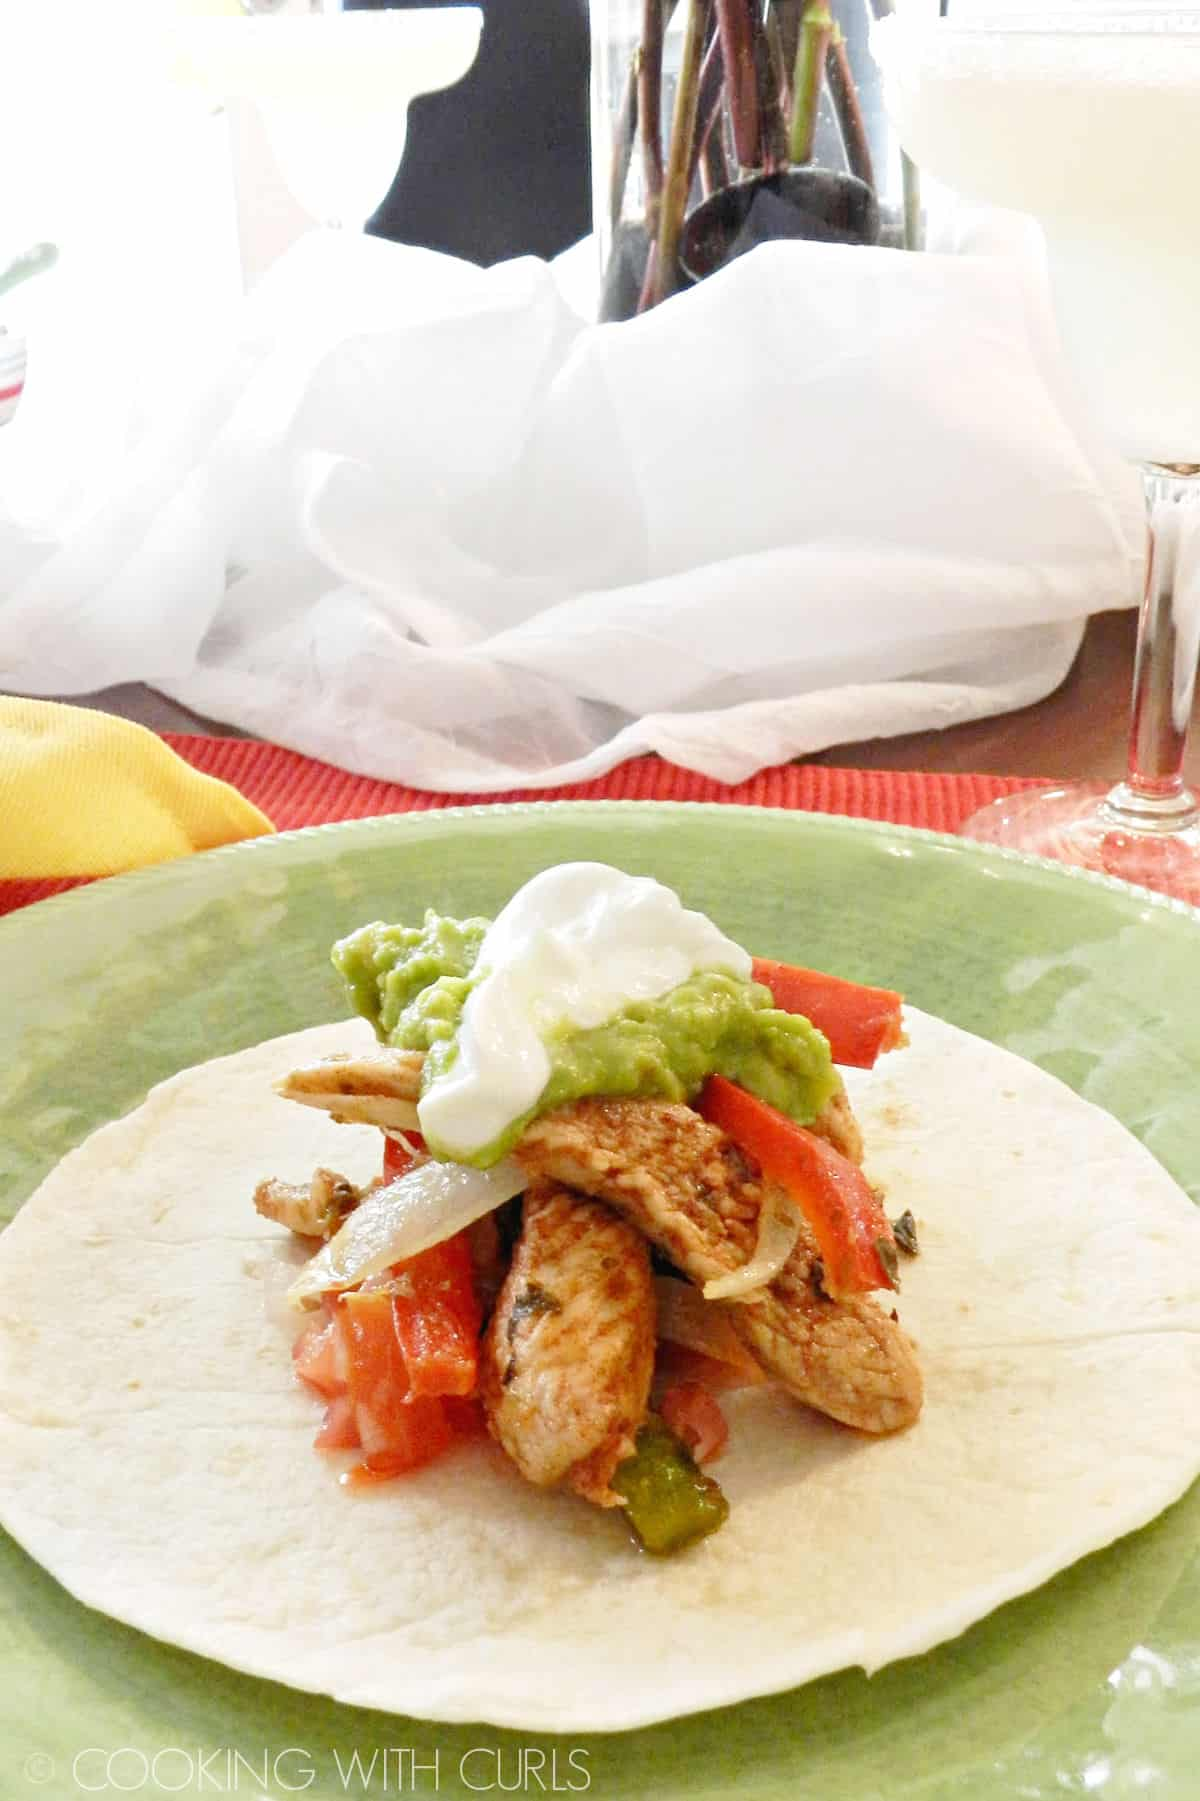 Strips of chicken, onion, and peppers stacked on a flour tortilla, topped with guacamole and sour cream.